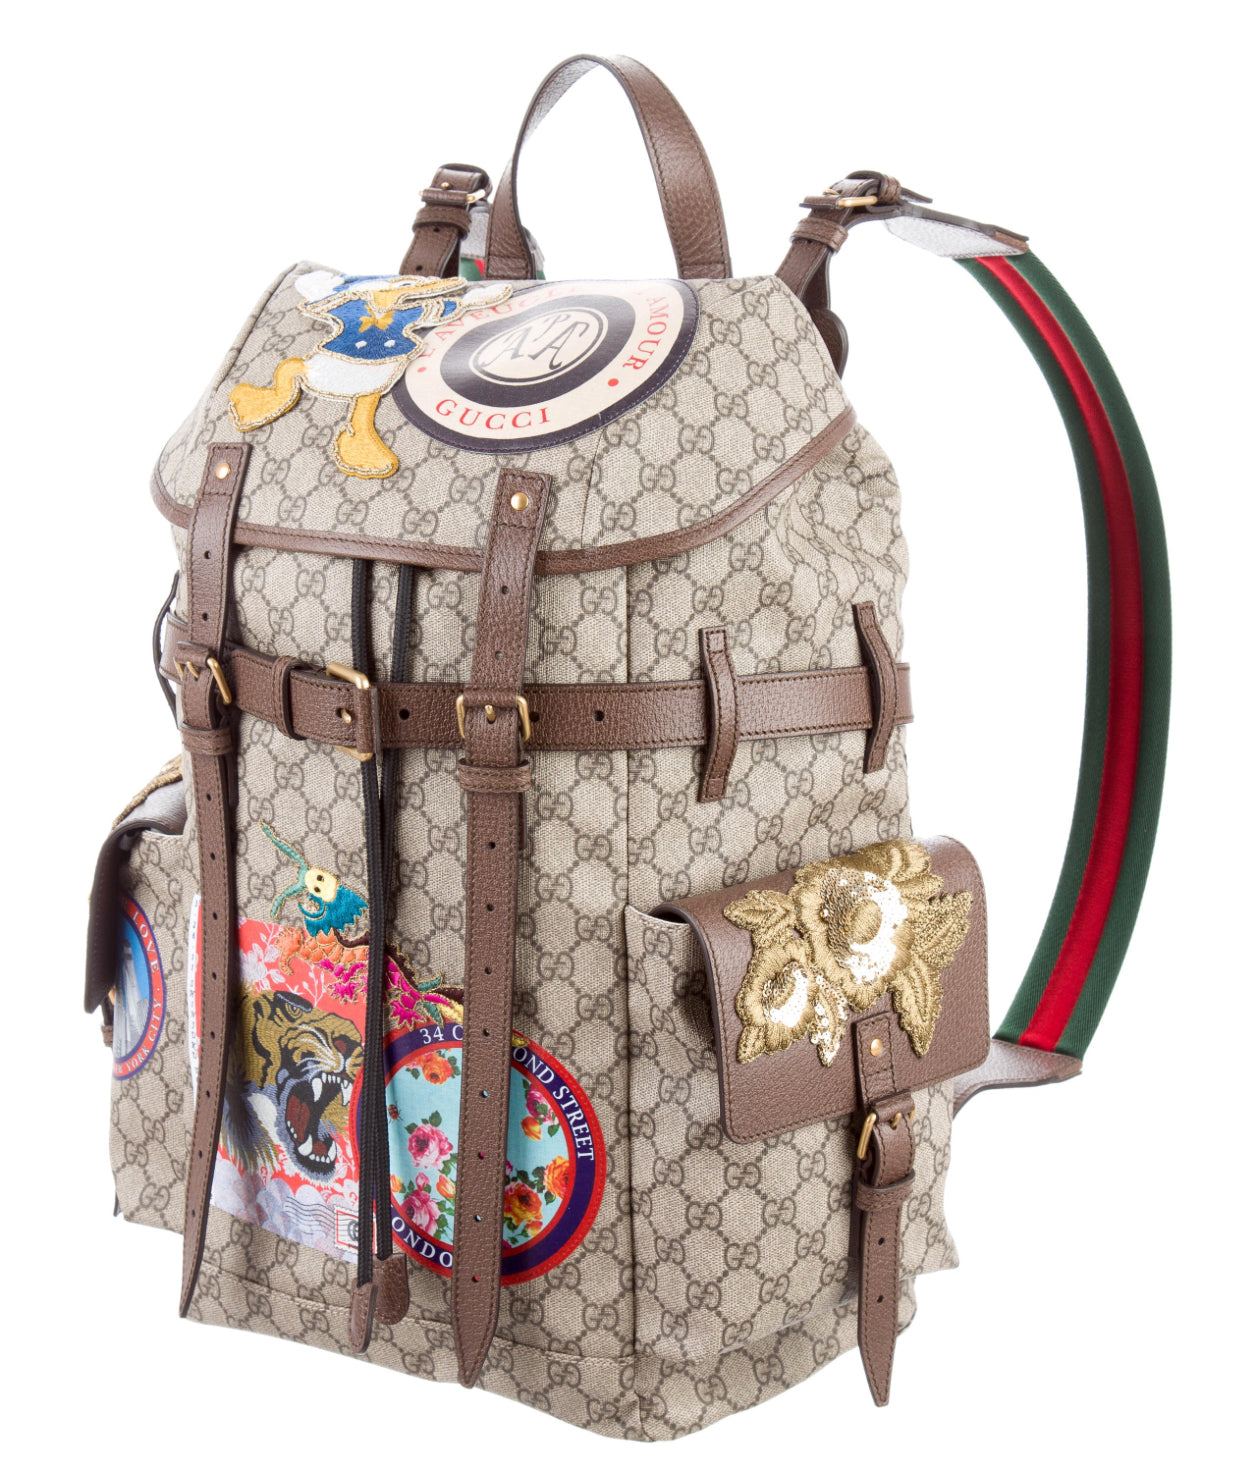 Gucci Courrier soft GG Supreme backpack – DopeATLaccessory d4f95ea0d407f